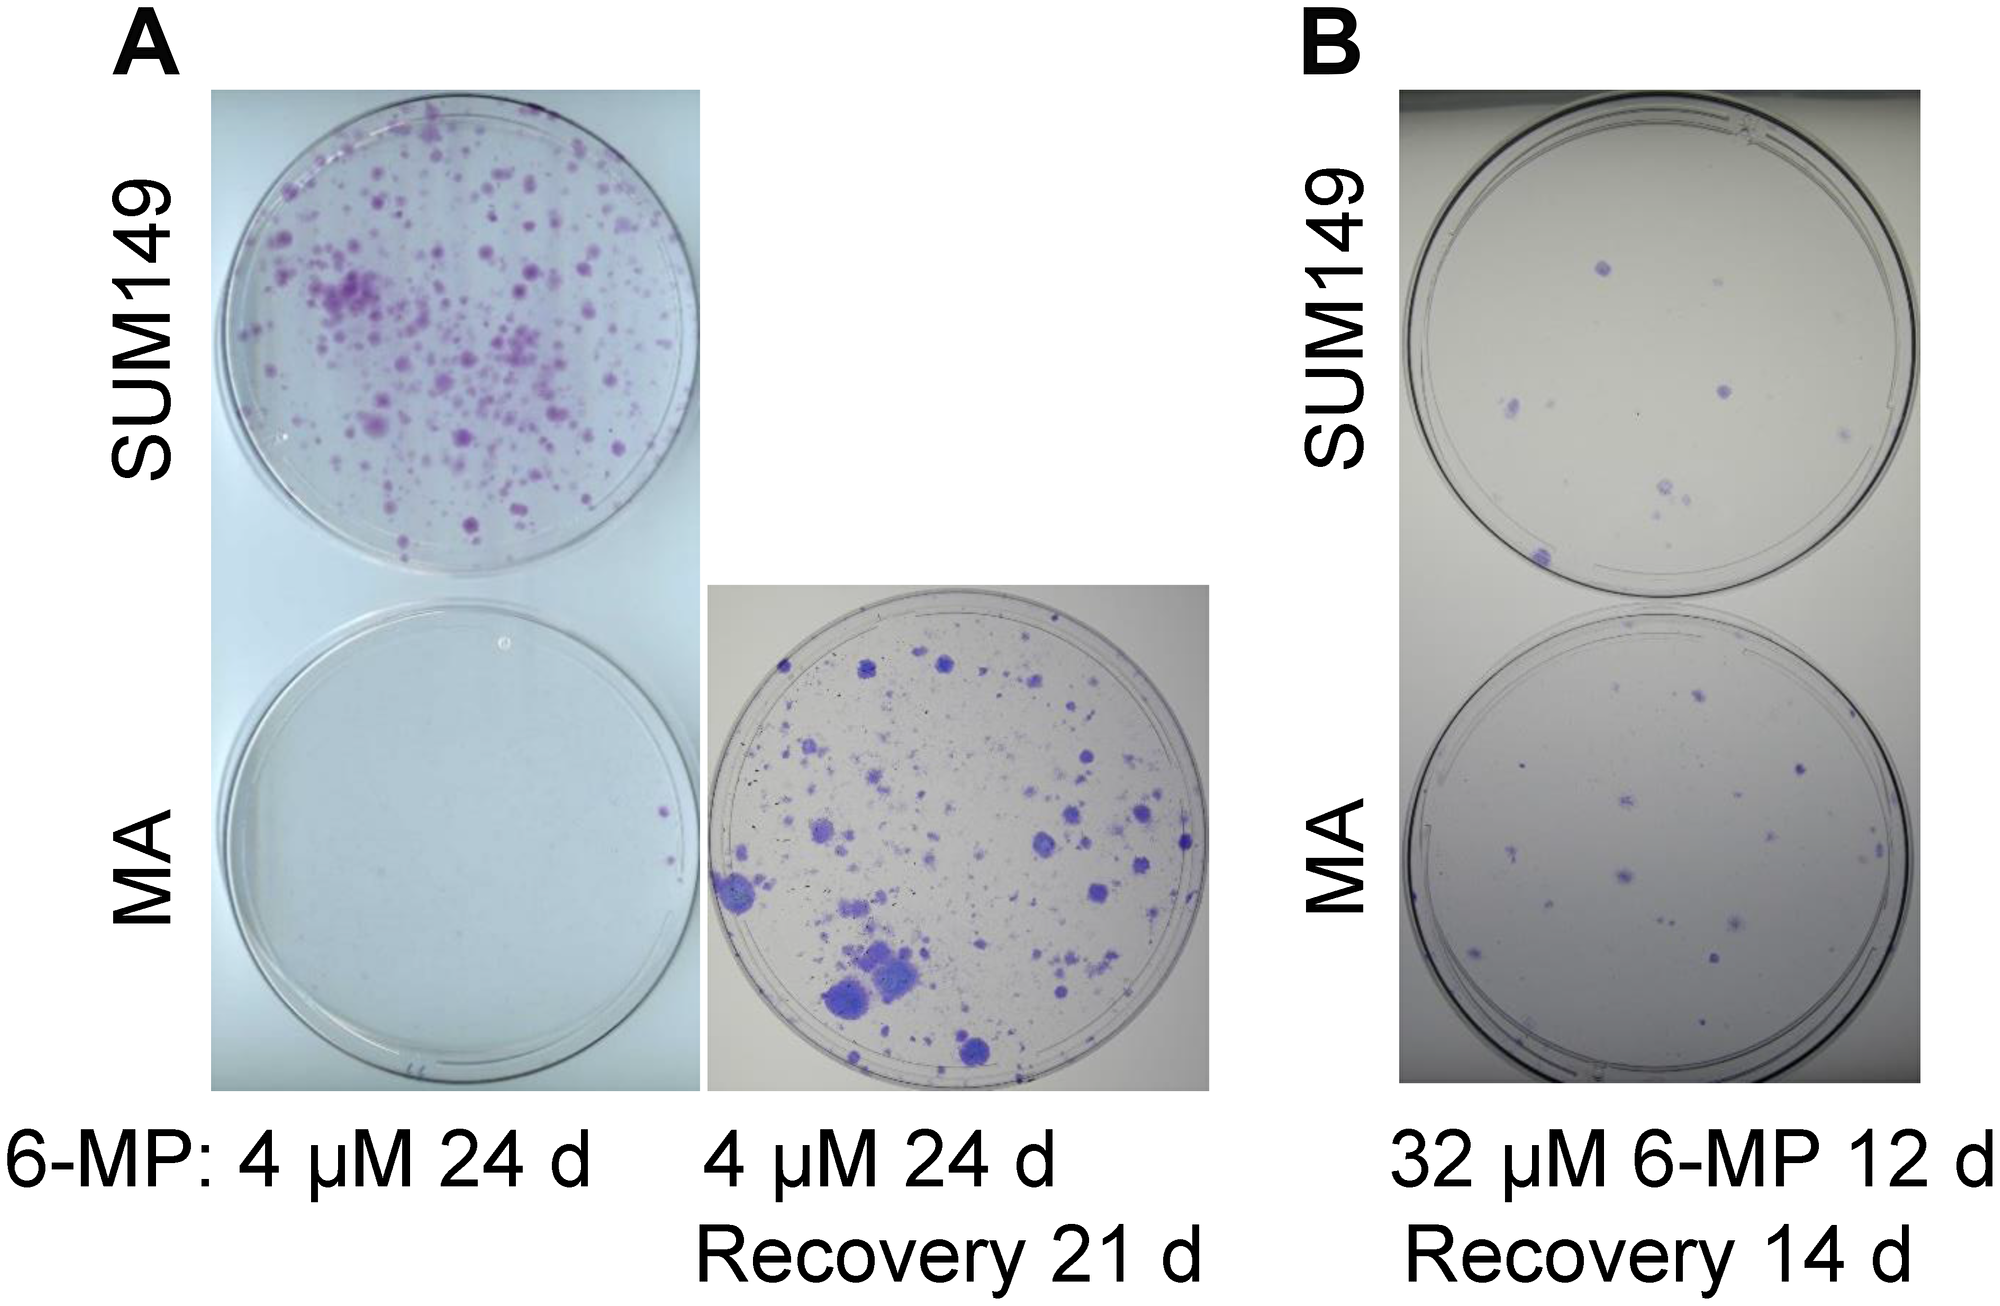 Differential effects of low-dose versus high-dose 6-MP on MA cells.